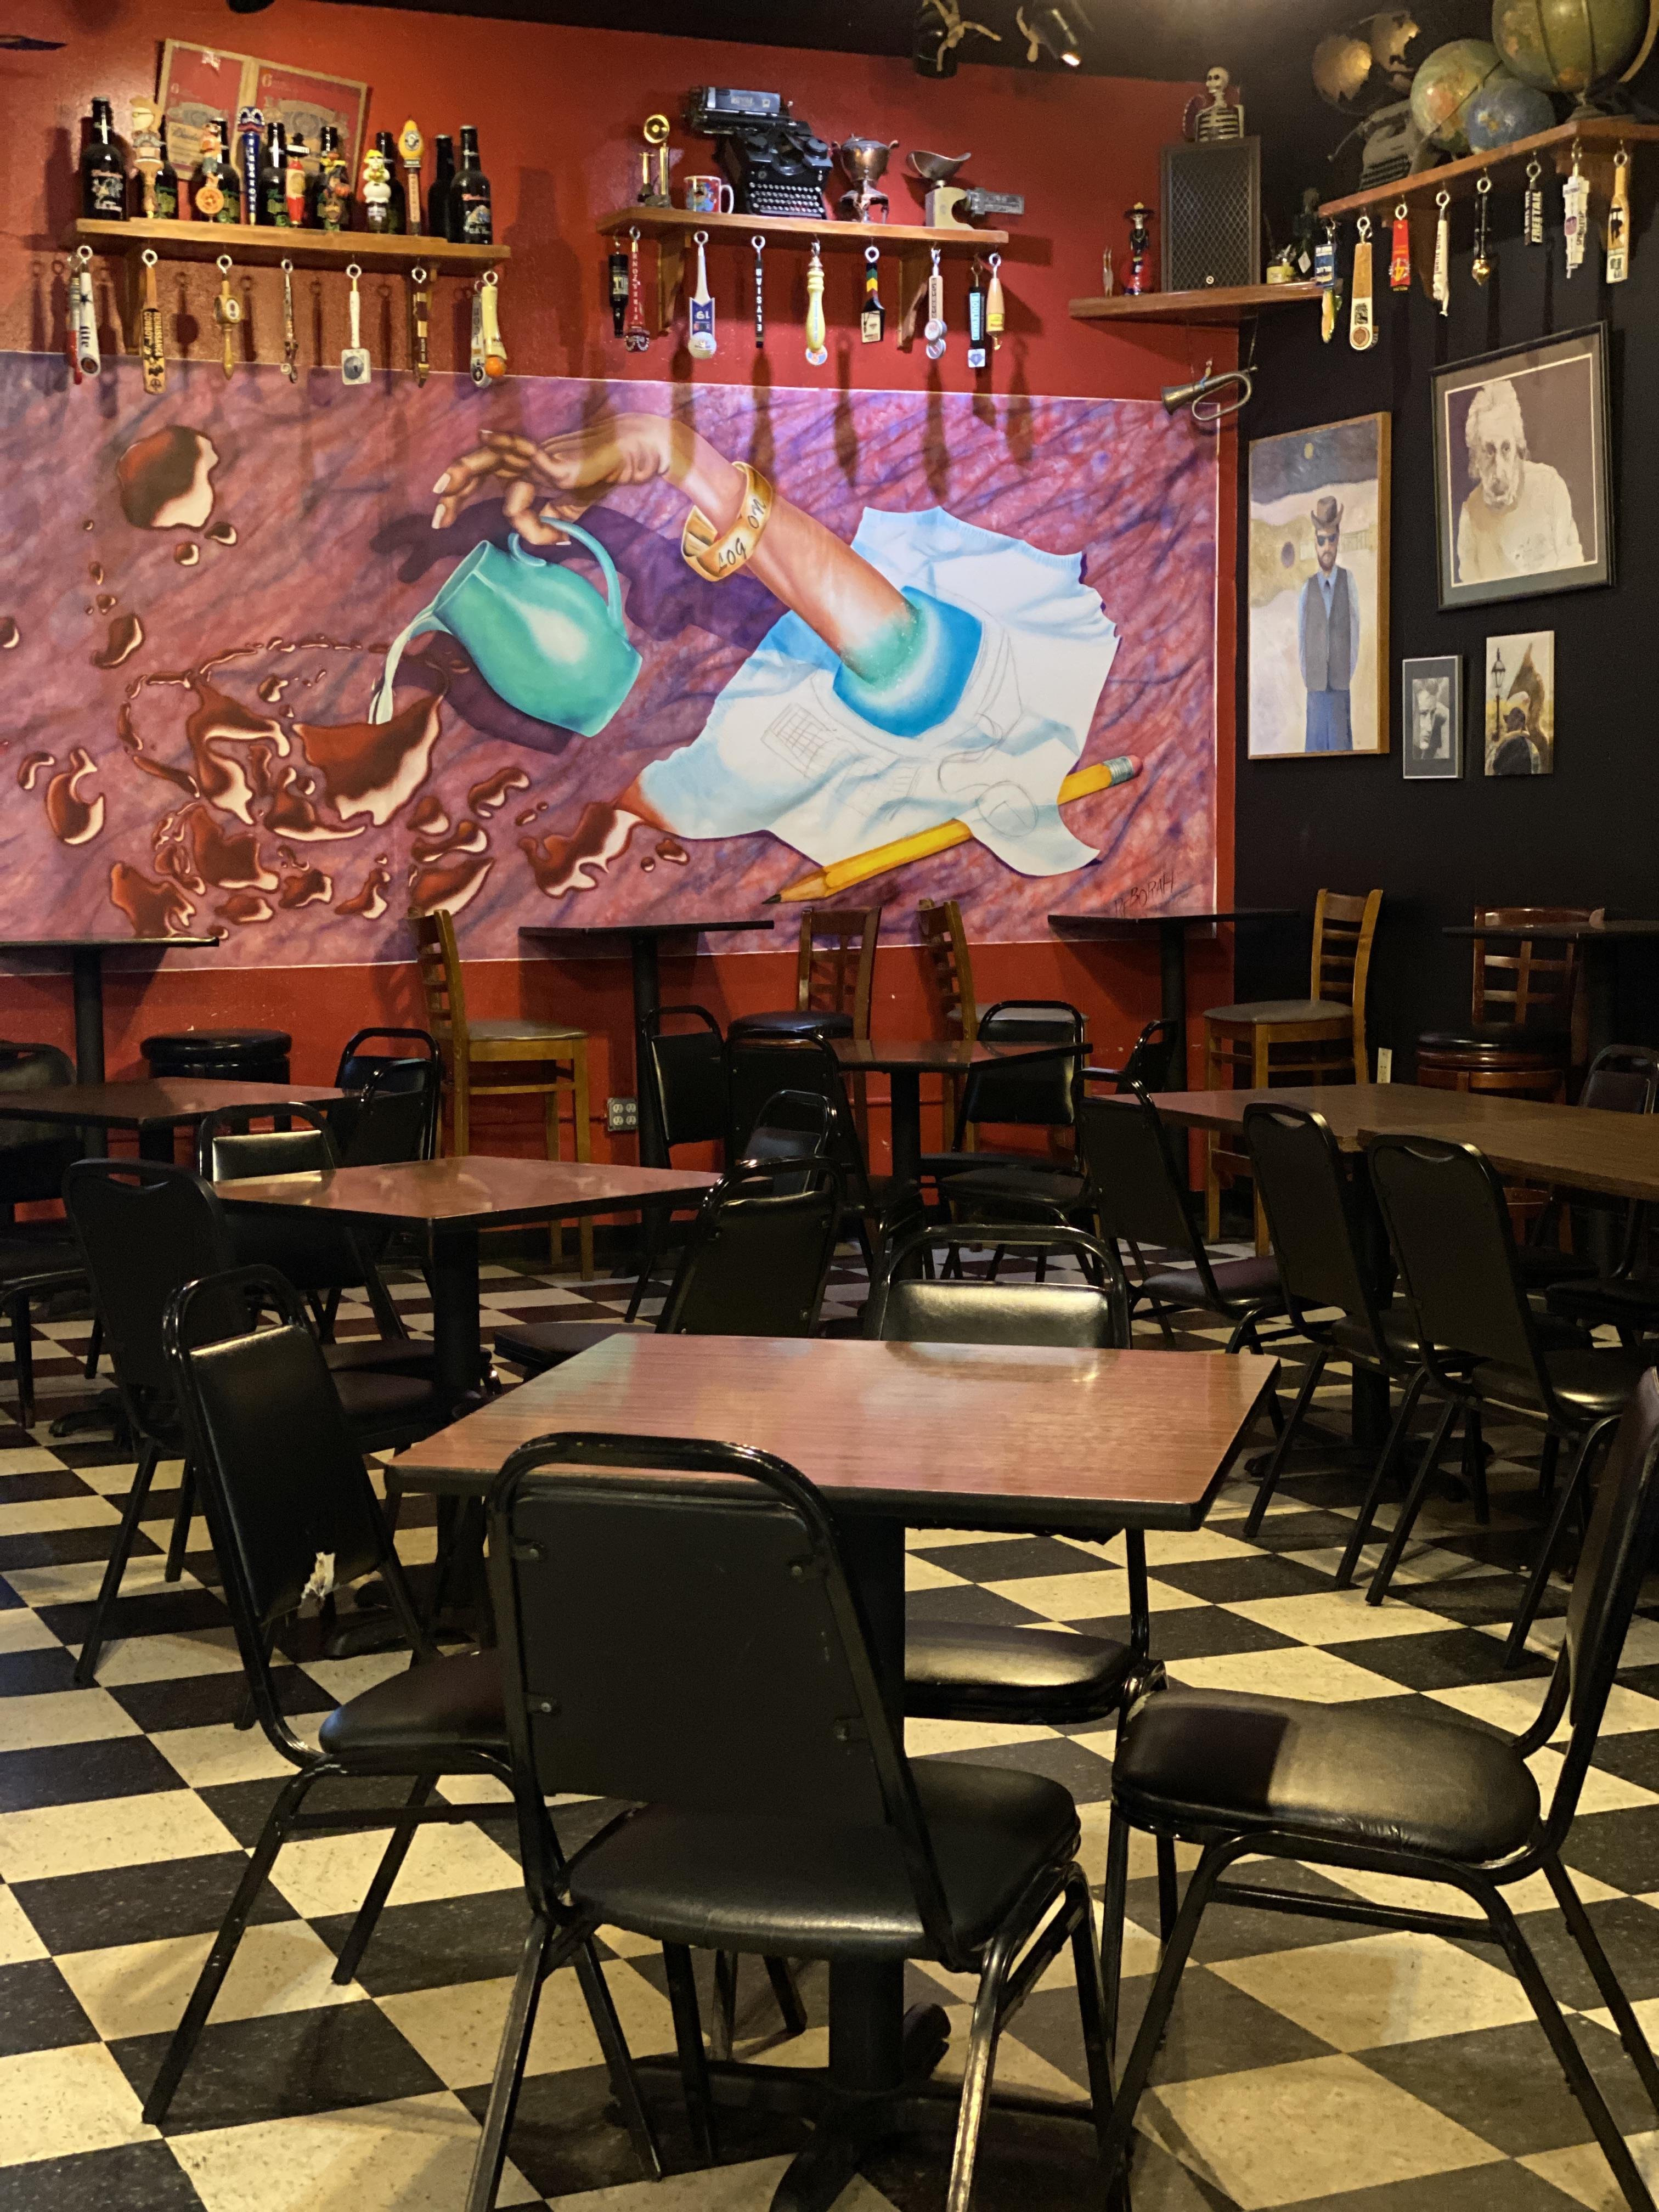 dining area of Logon Cafe with mural of hand pouring wine from pitcher